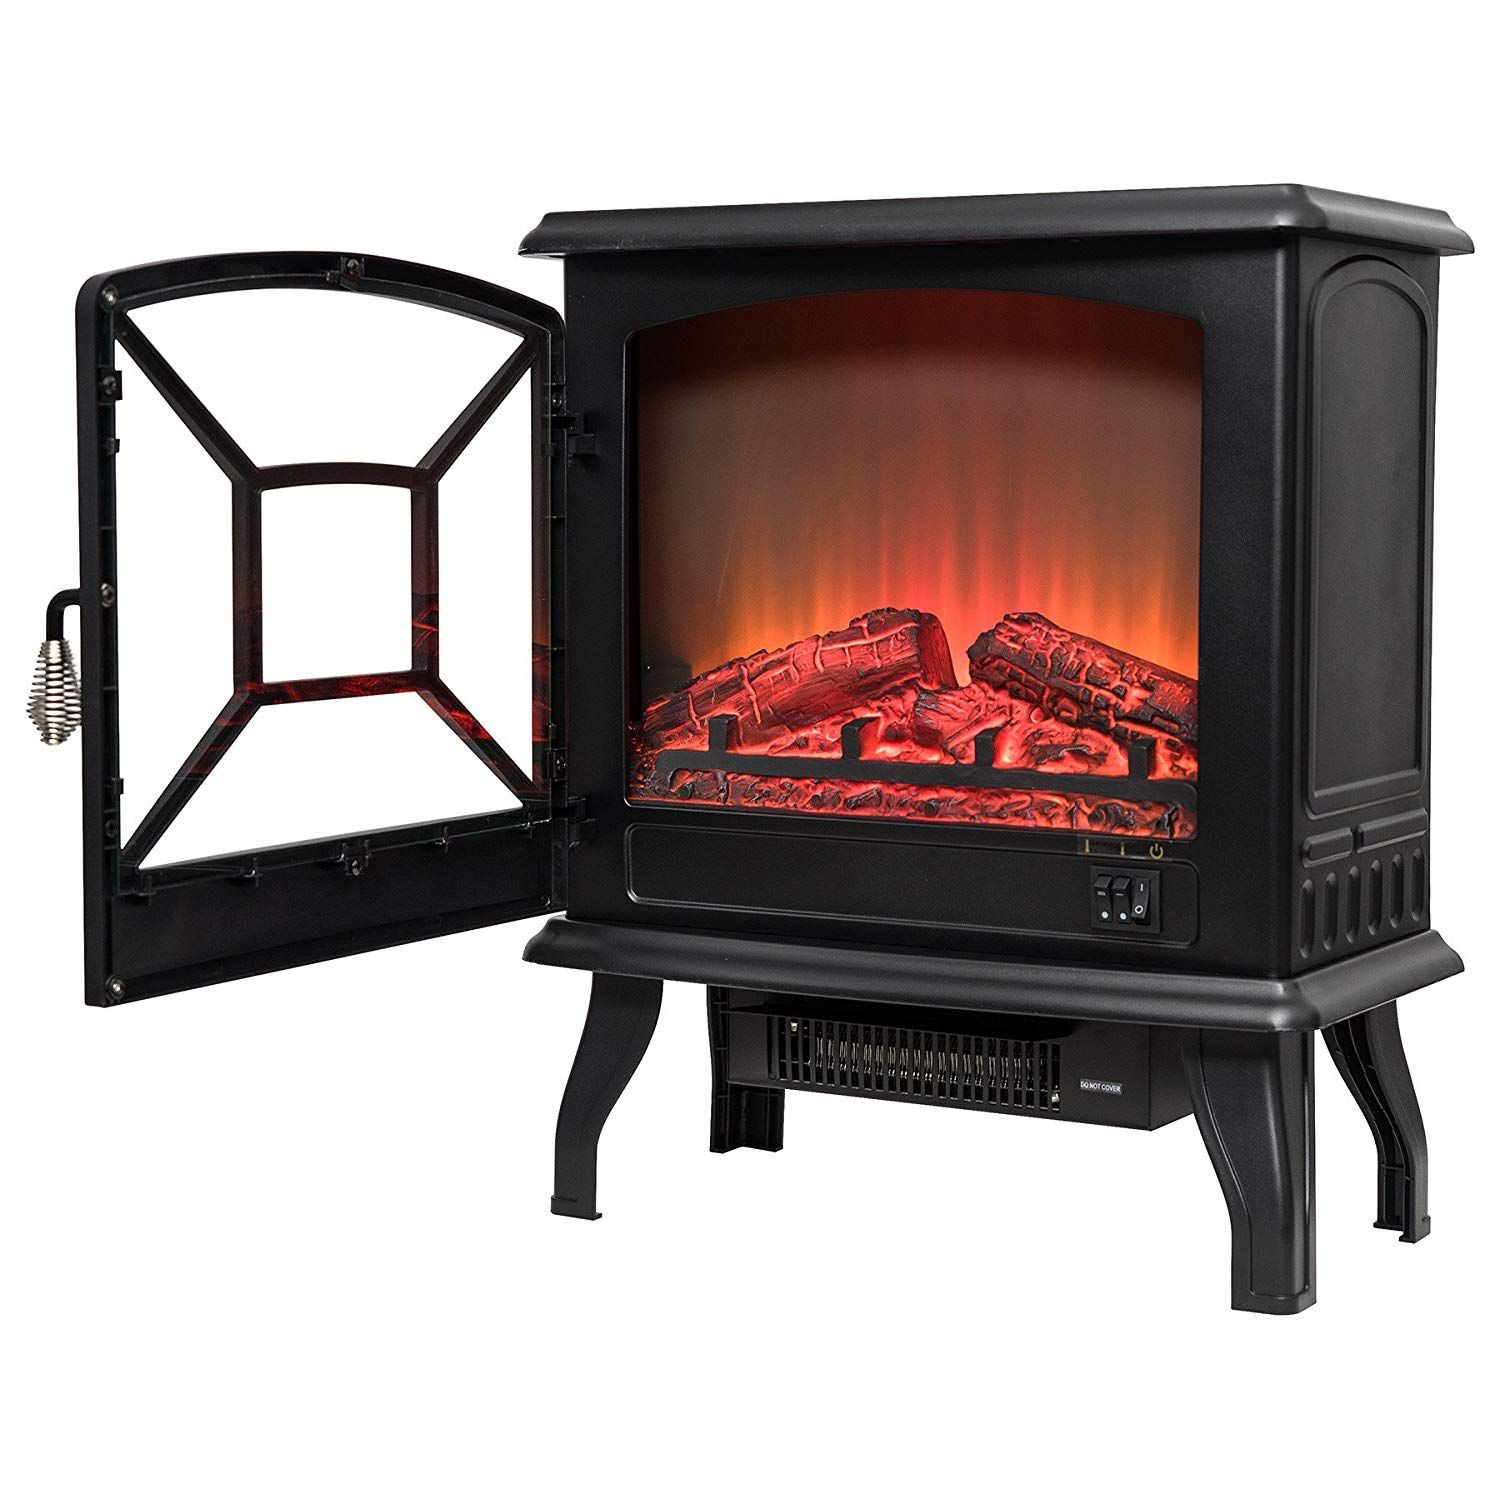 Akdy 20 Black Finish Freestanding Log Fuel Bed 2 Setting Level Electric Fireplace He Fireplace Heater Electric Fireplace Heater Electric Fireplace